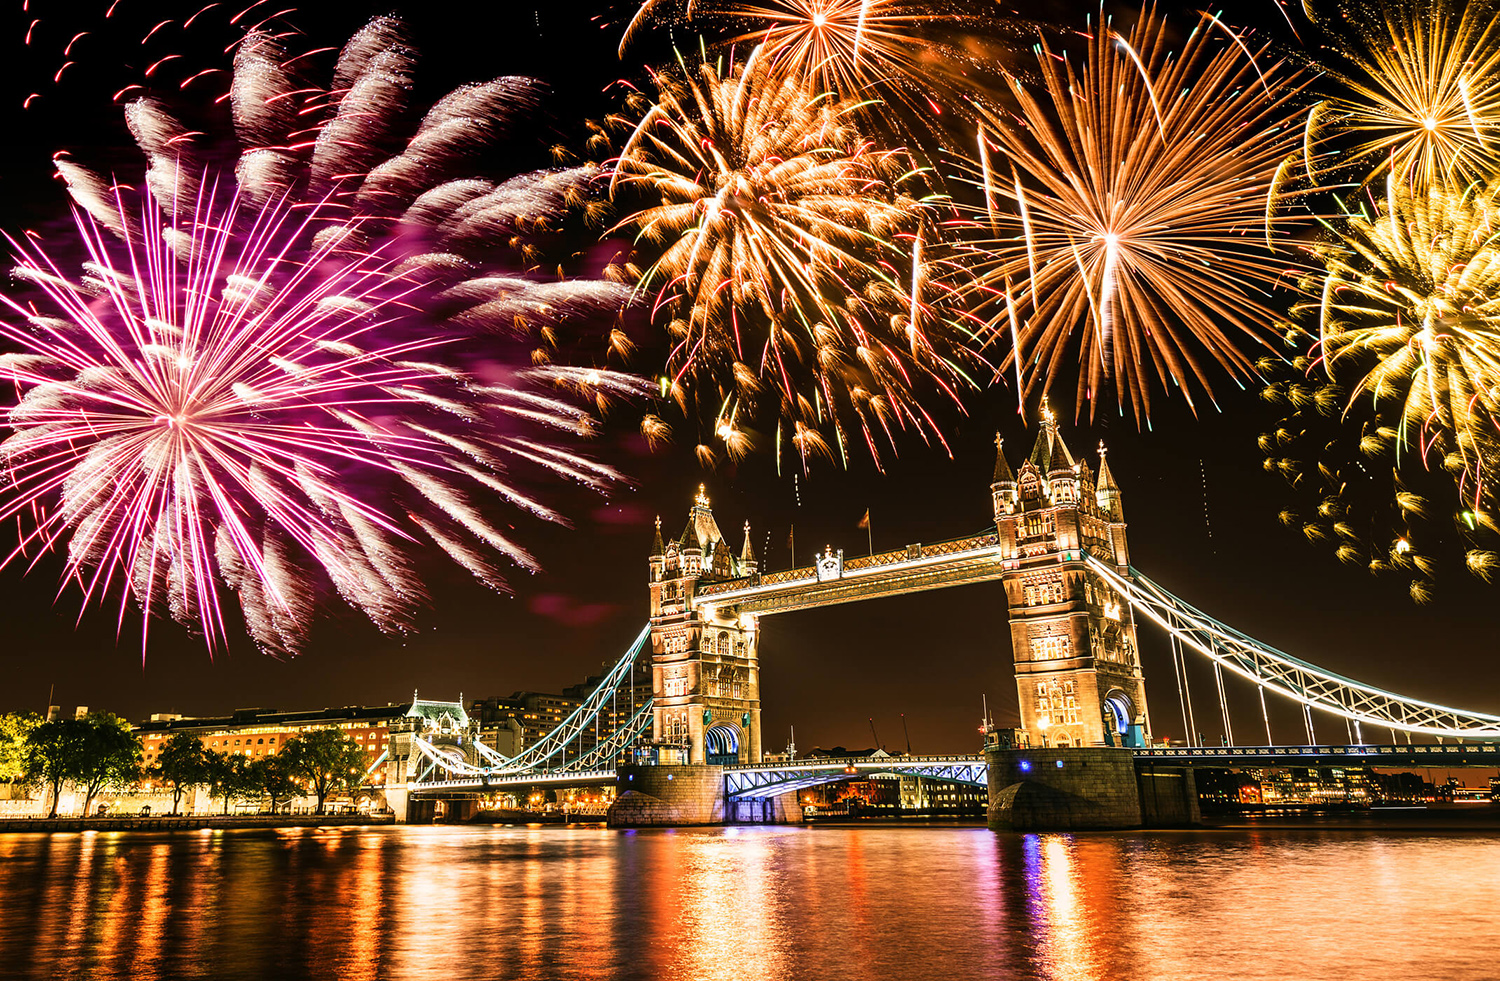 09_szilveszter_ujev_new_year_s_eve_tuzijatek_fireworks_tower_bridge_london_nagy-britannia_anglia_great_britain_england.jpg